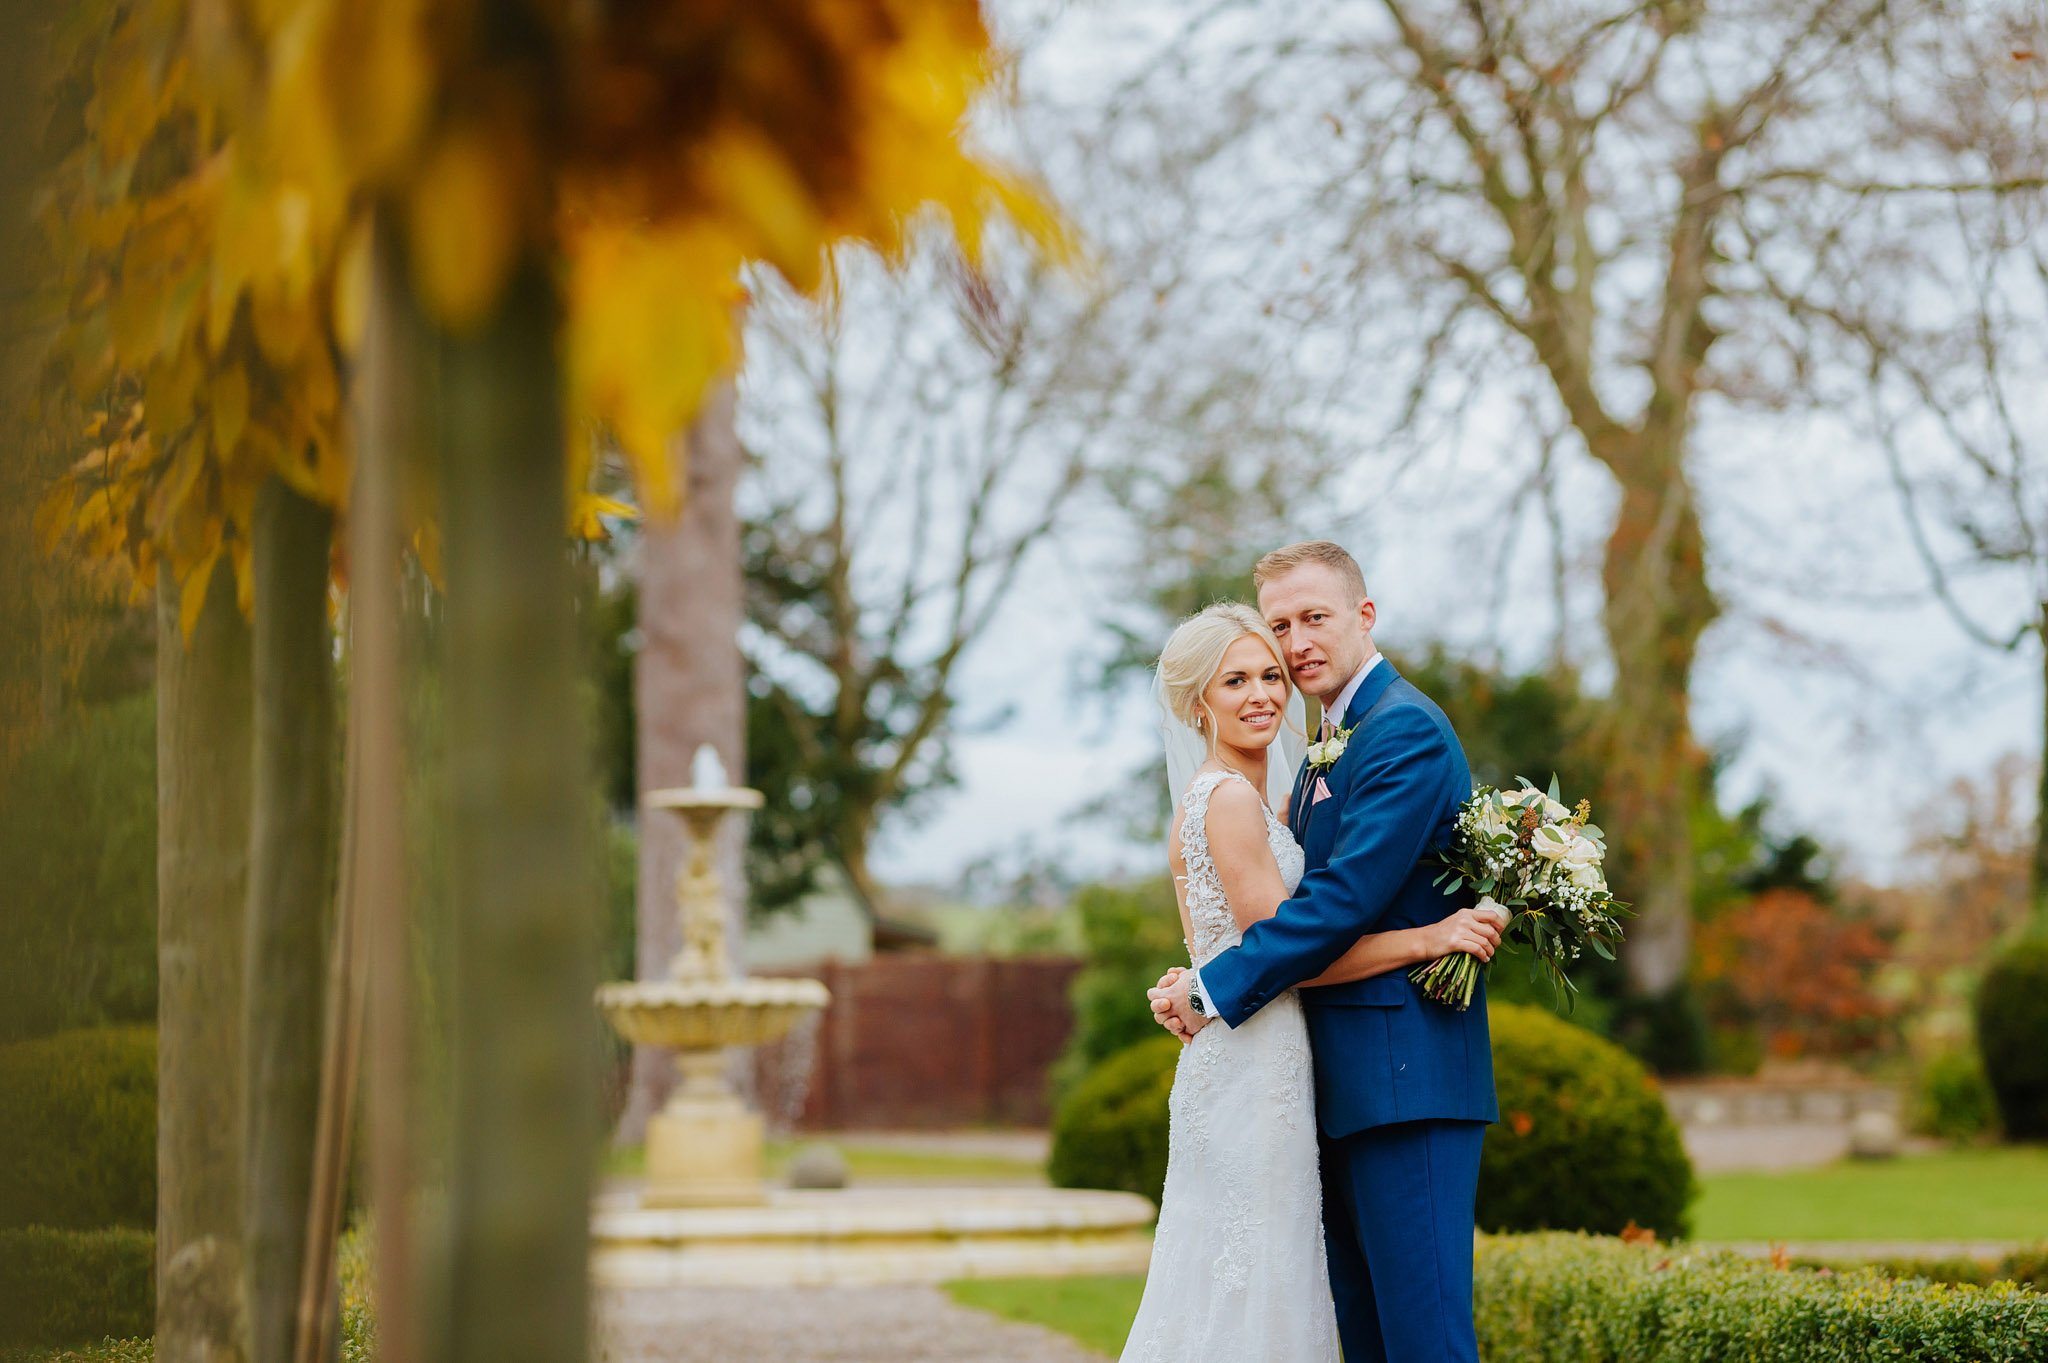 lemore manor wedding herefordshire 105 - Lemore Manor wedding, Herefordshire - West Midlands | Sadie + Ken